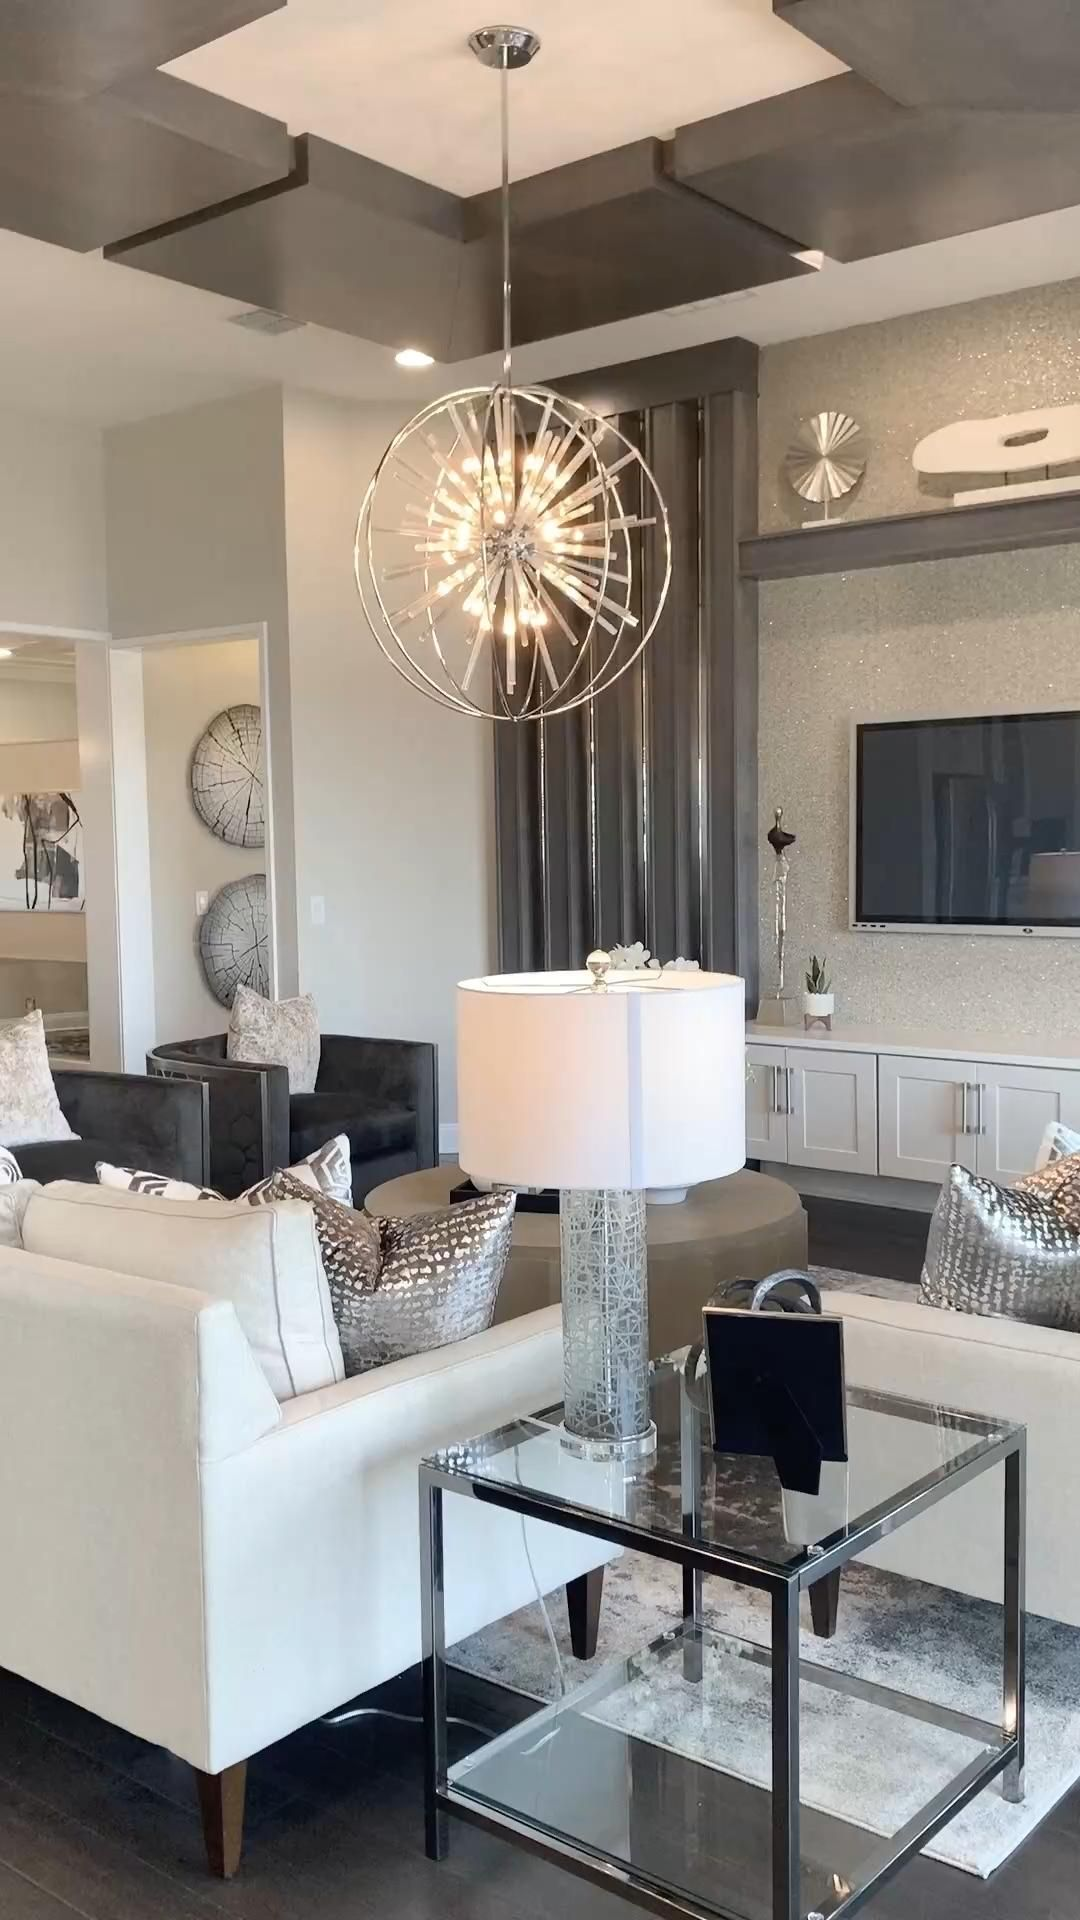 The most requested new home design is the Open Concept. With neutral decor, hard wood floors and a touch of glam completes this interior design idea. #NewHomes #ModelHomes #decorideas